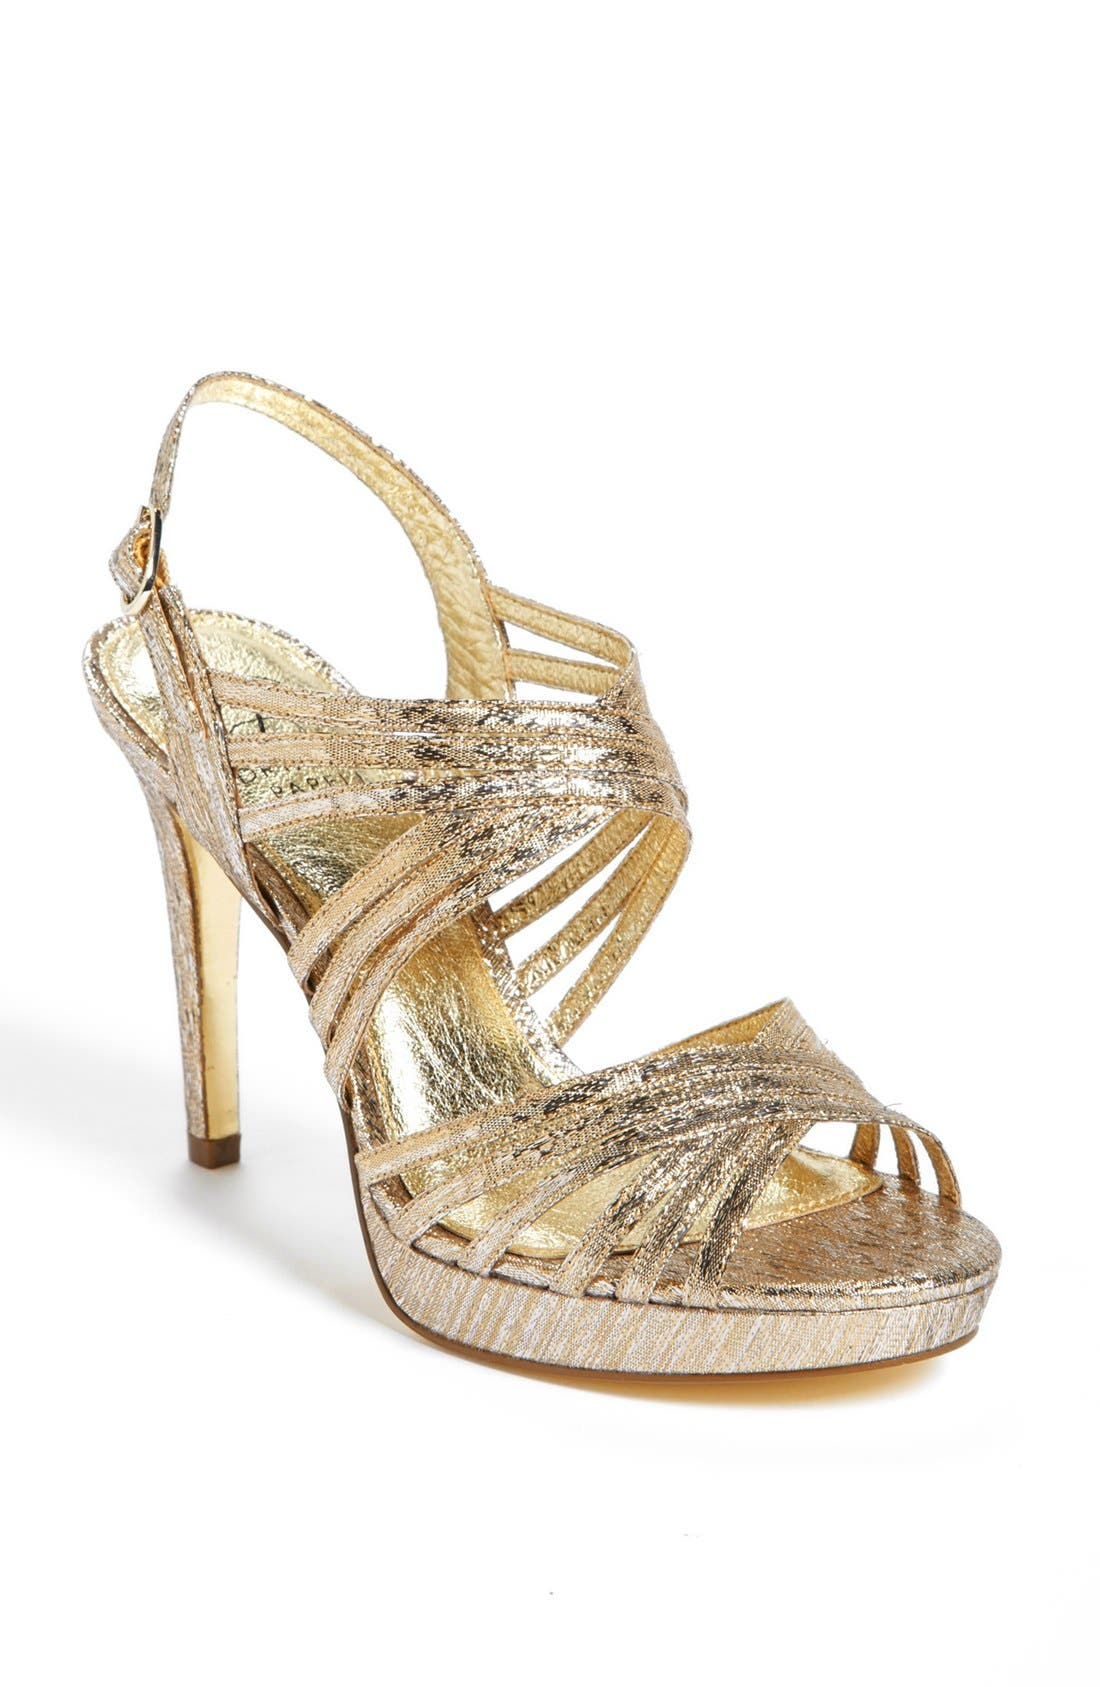 Alternate Image 1 Selected - Adrianna Papell 'Aiden' Sandal